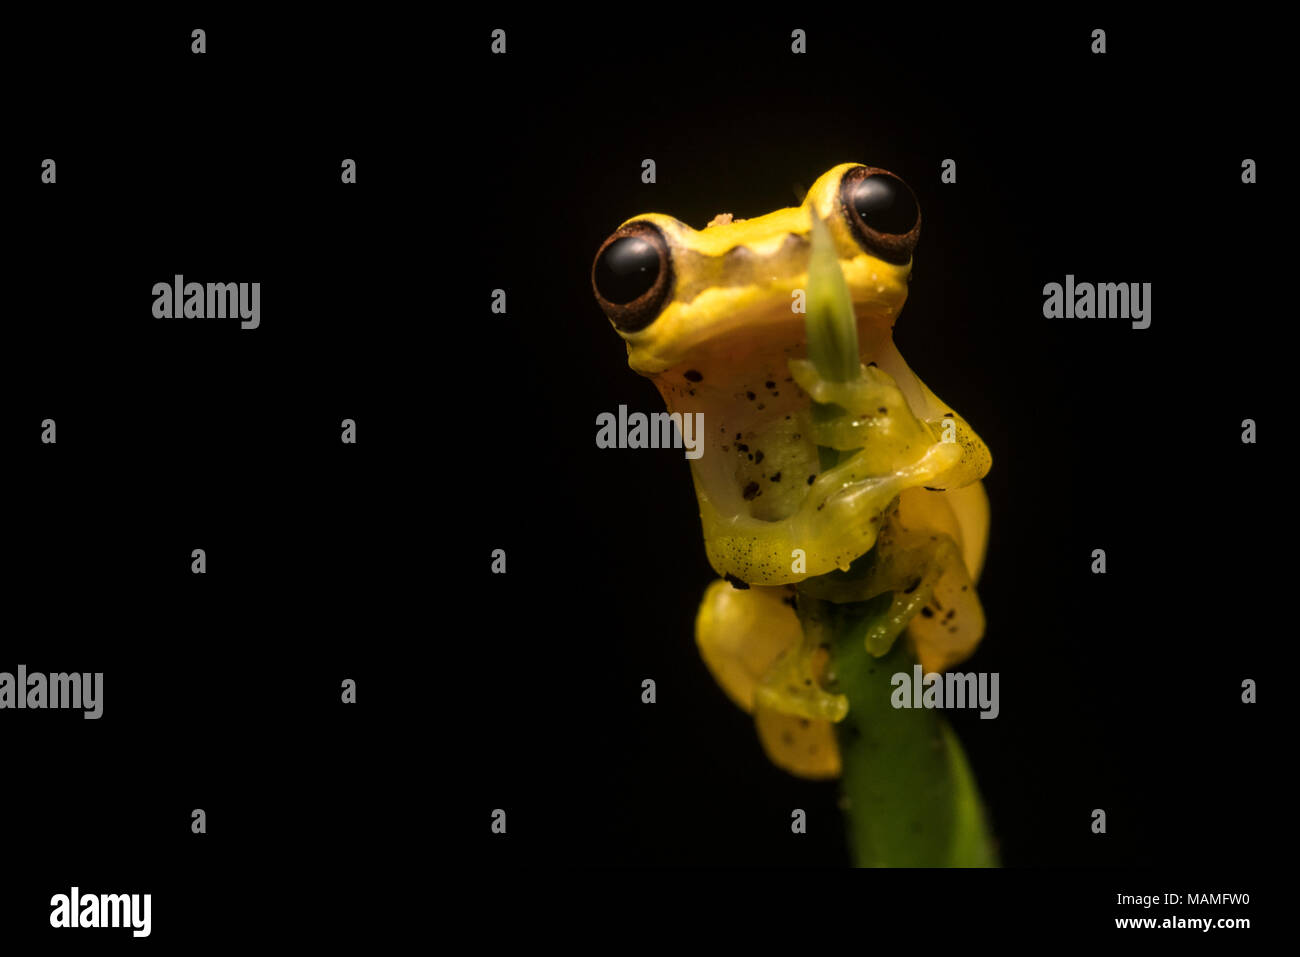 A clown tree frog (Dendropsophus) from the Peruvian jungle.  These very cute little frogs can be found around standing water in the rainforest. - Stock Image